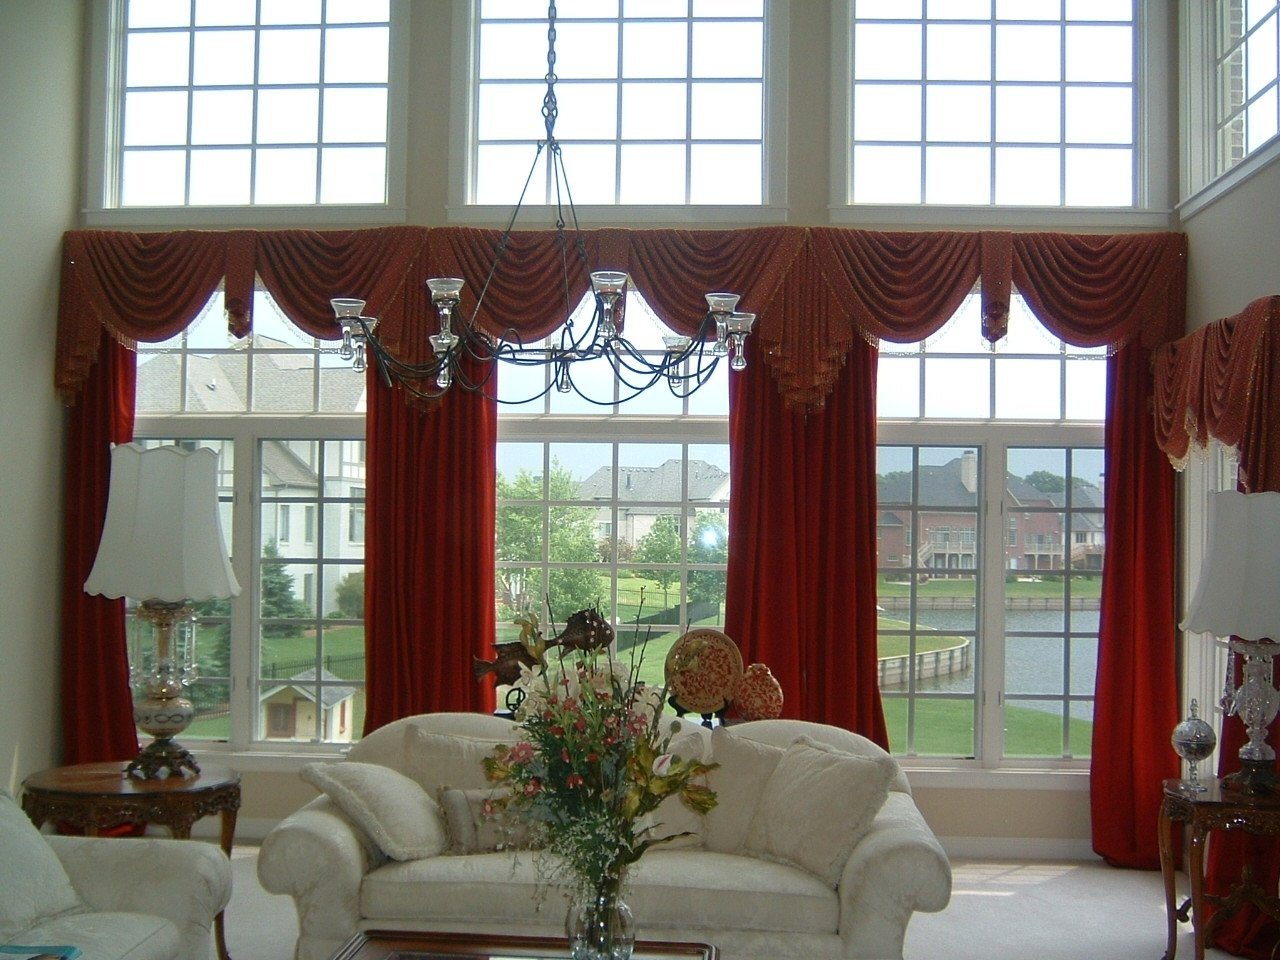 10 Famous Curtain Ideas For Large Windows exterior astonishing curtain ideas for large windows design with 2020